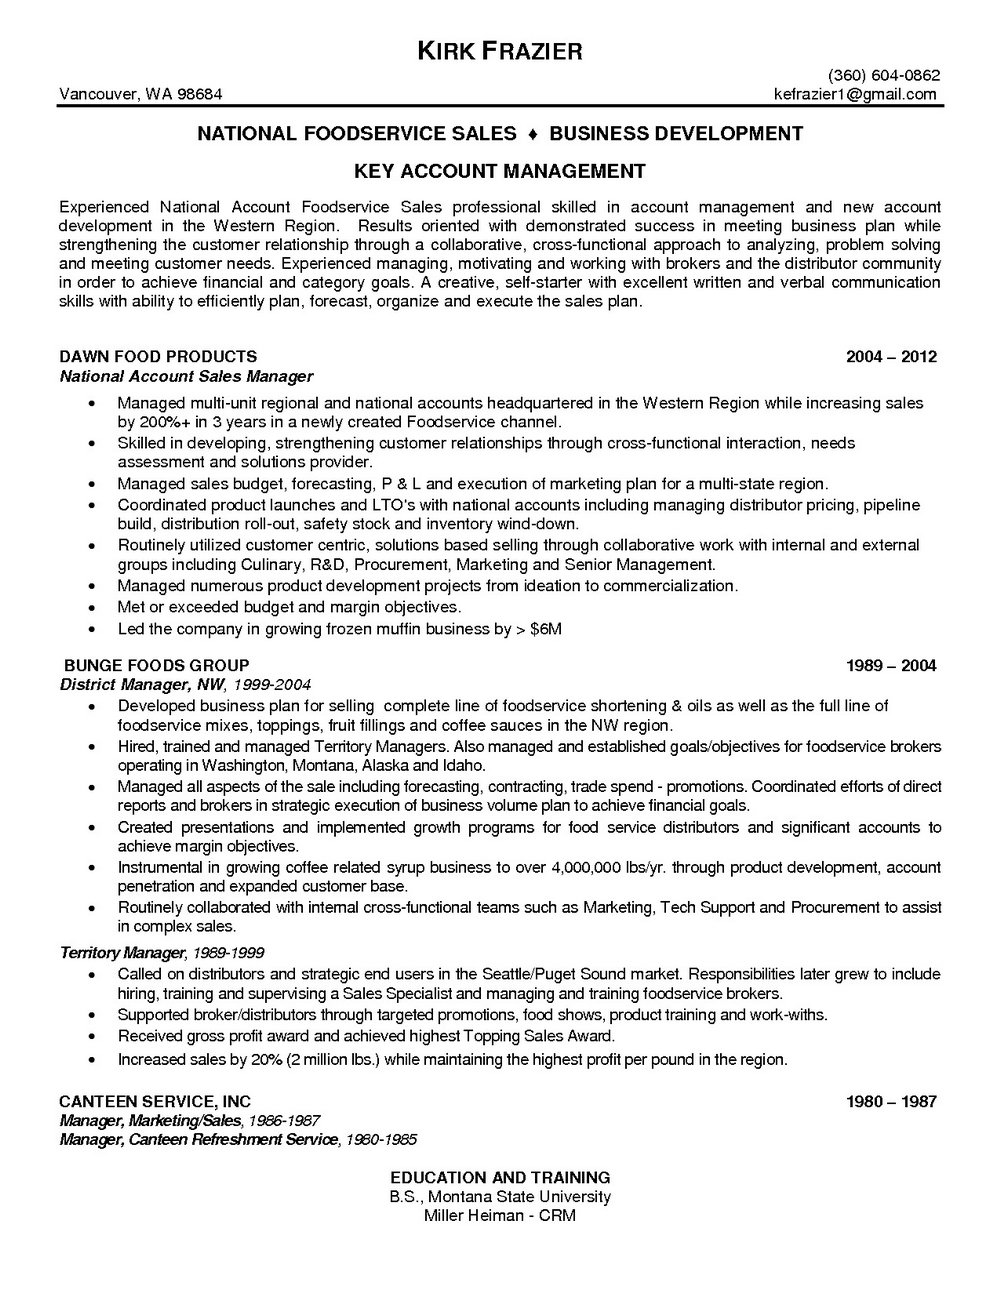 Resume Samples For Accounts Payable Specialist